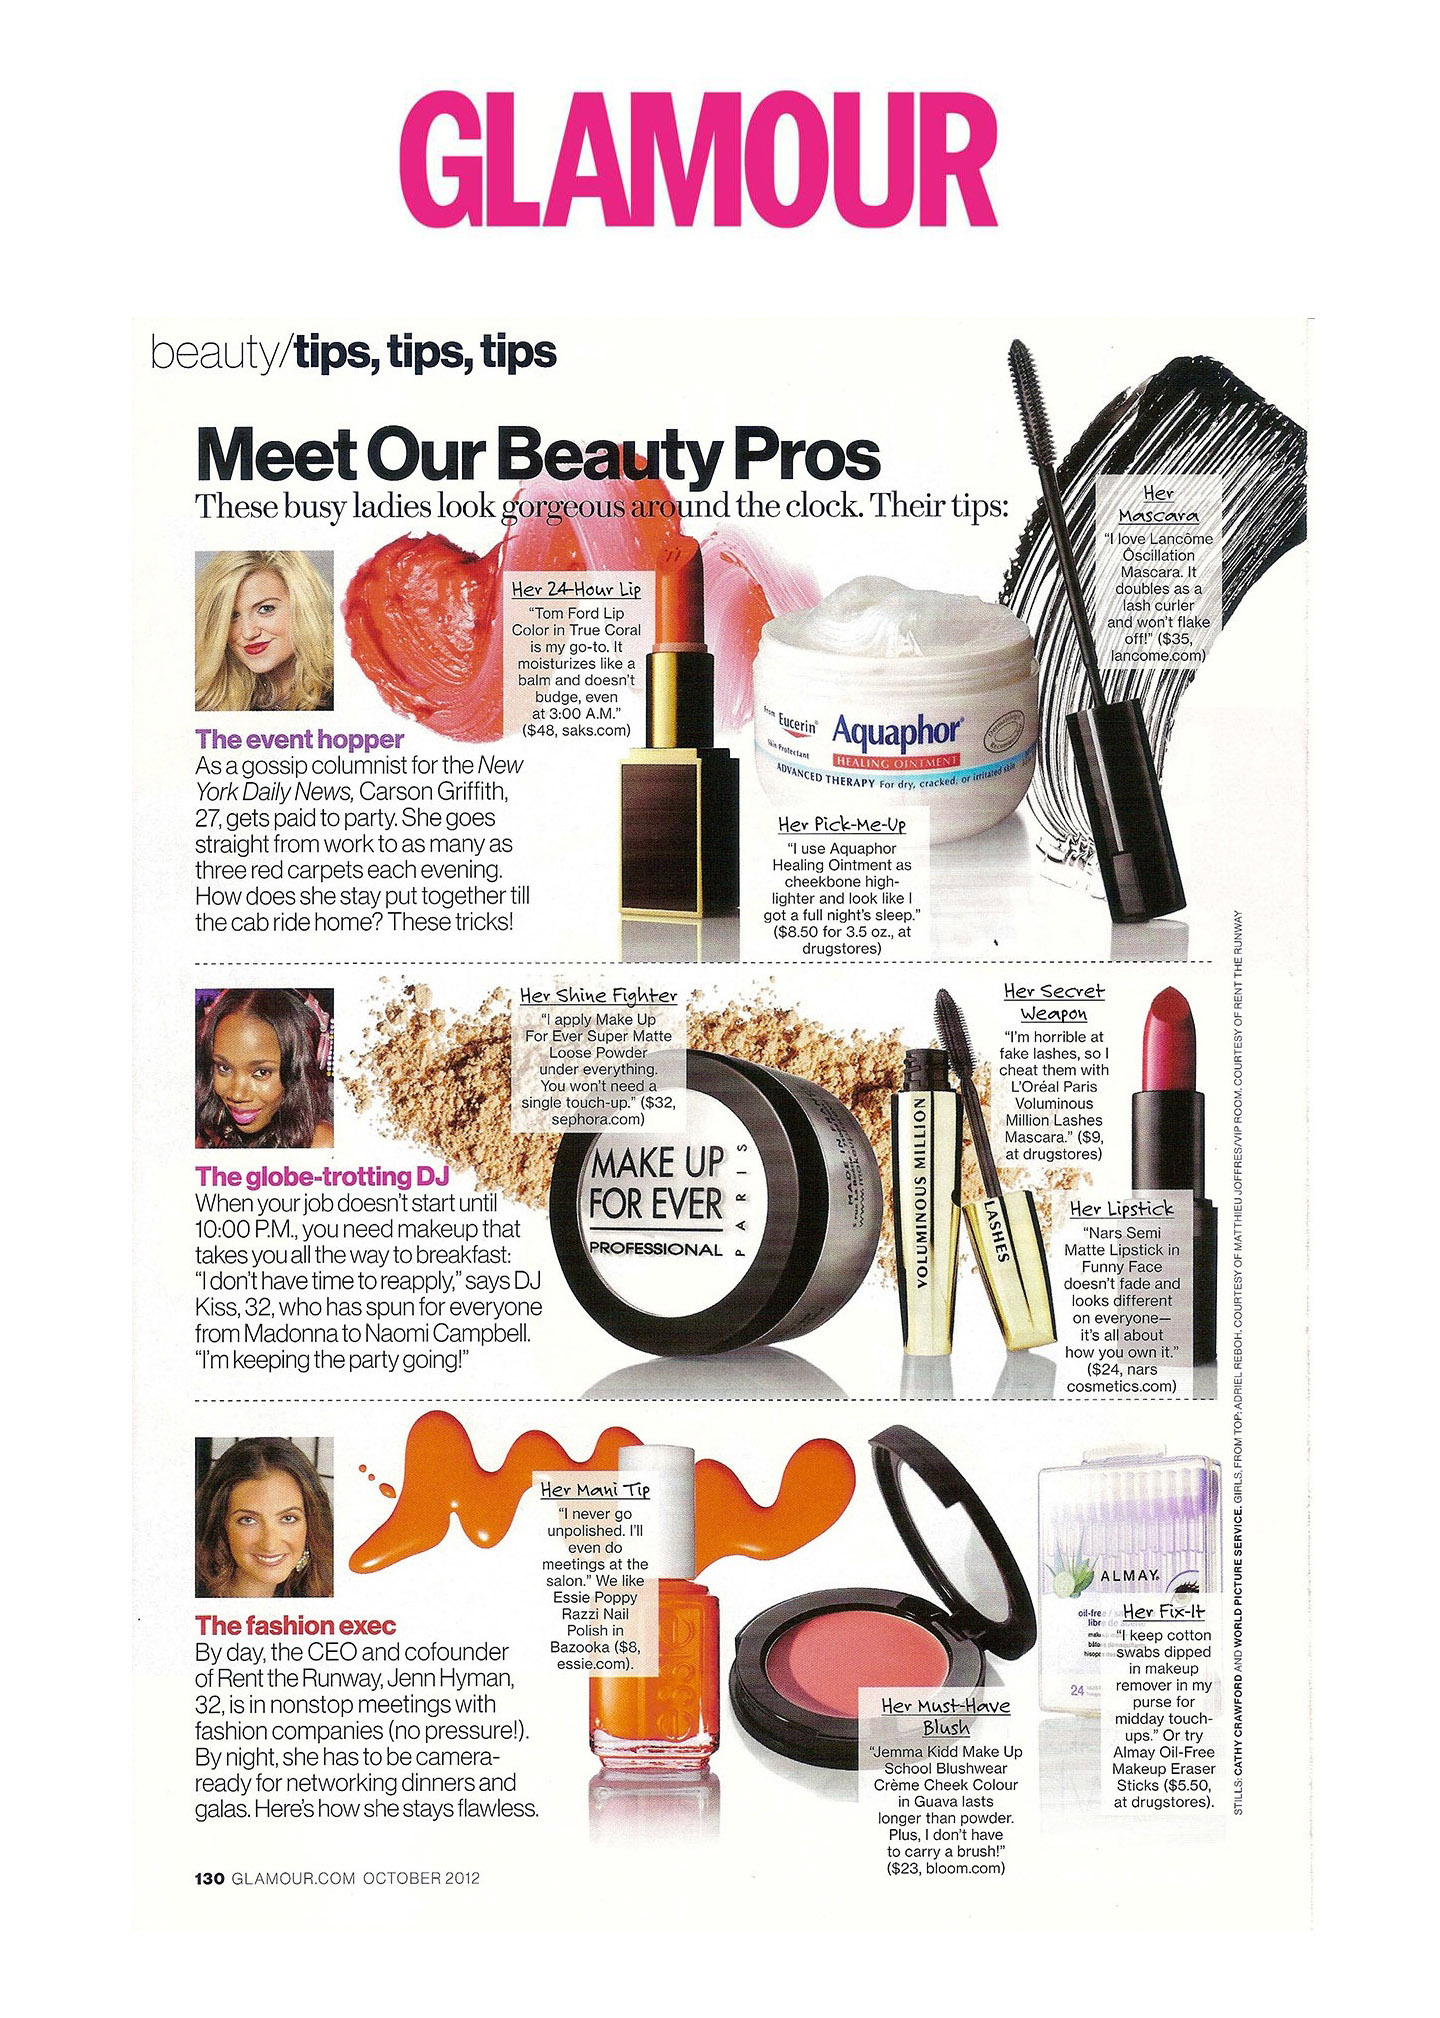 Glamour Magazine - Beauty Feature